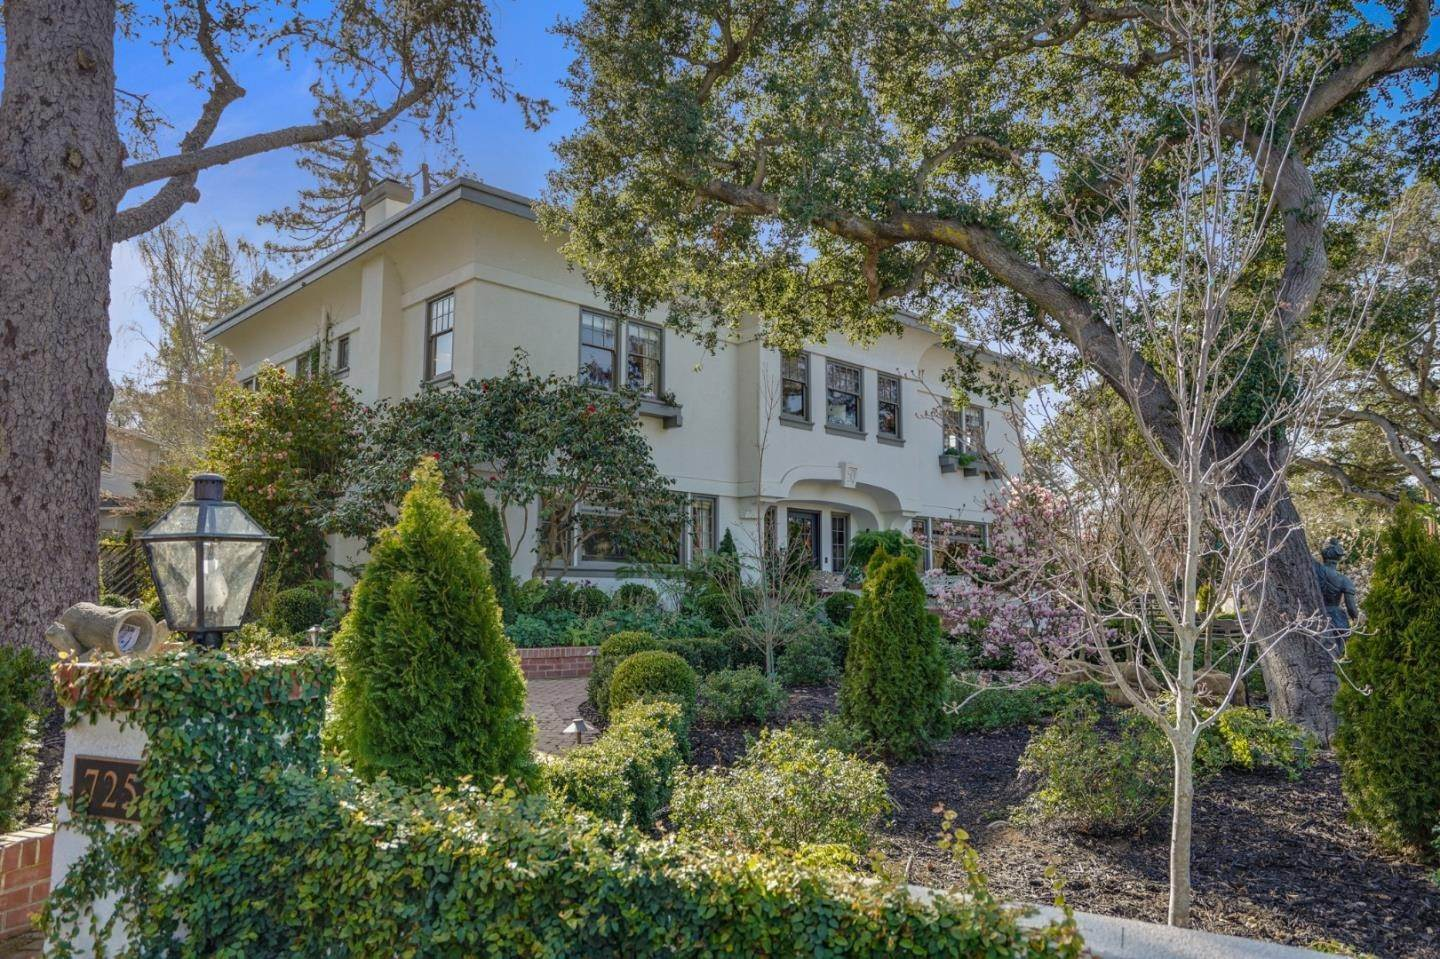 Single Family Homes for Sale at 725 Hurlingham Avenue San Mateo, California 94402 United States